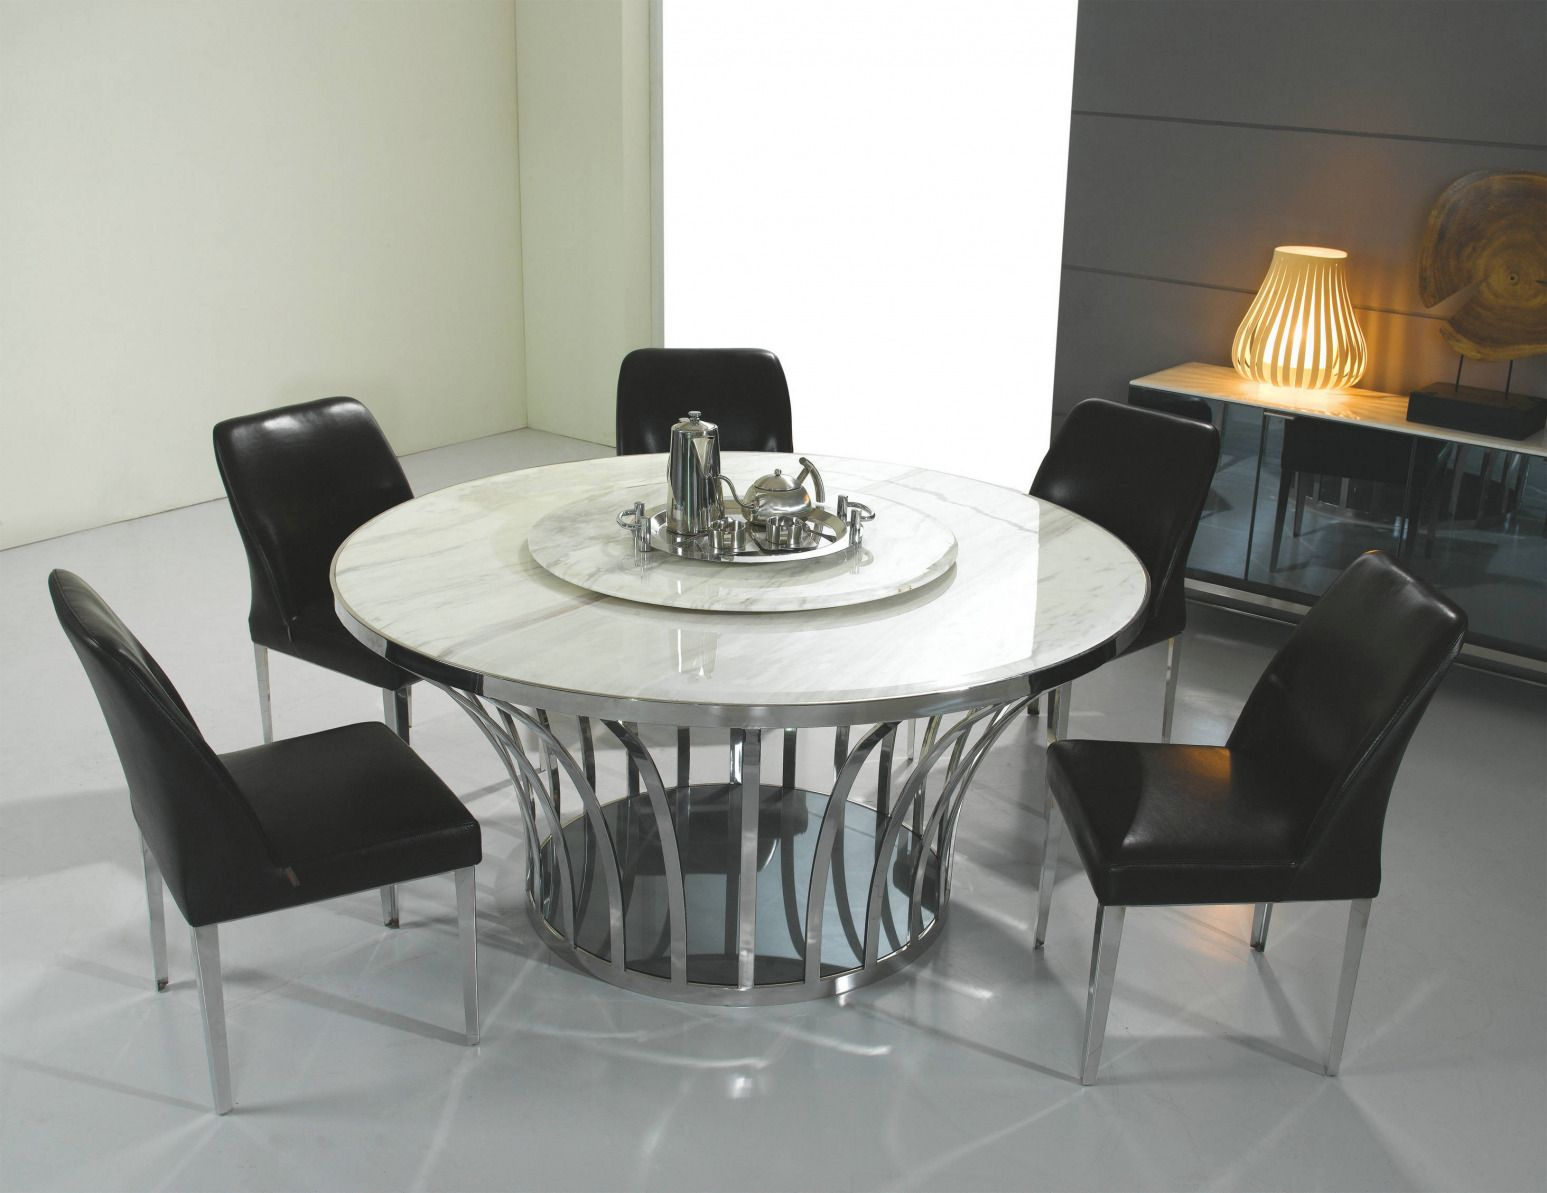 100 Marble Top Round Dining Table  Cool Storage Furniture Check Entrancing Cheap Dining Room Sets Under 100 Design Ideas